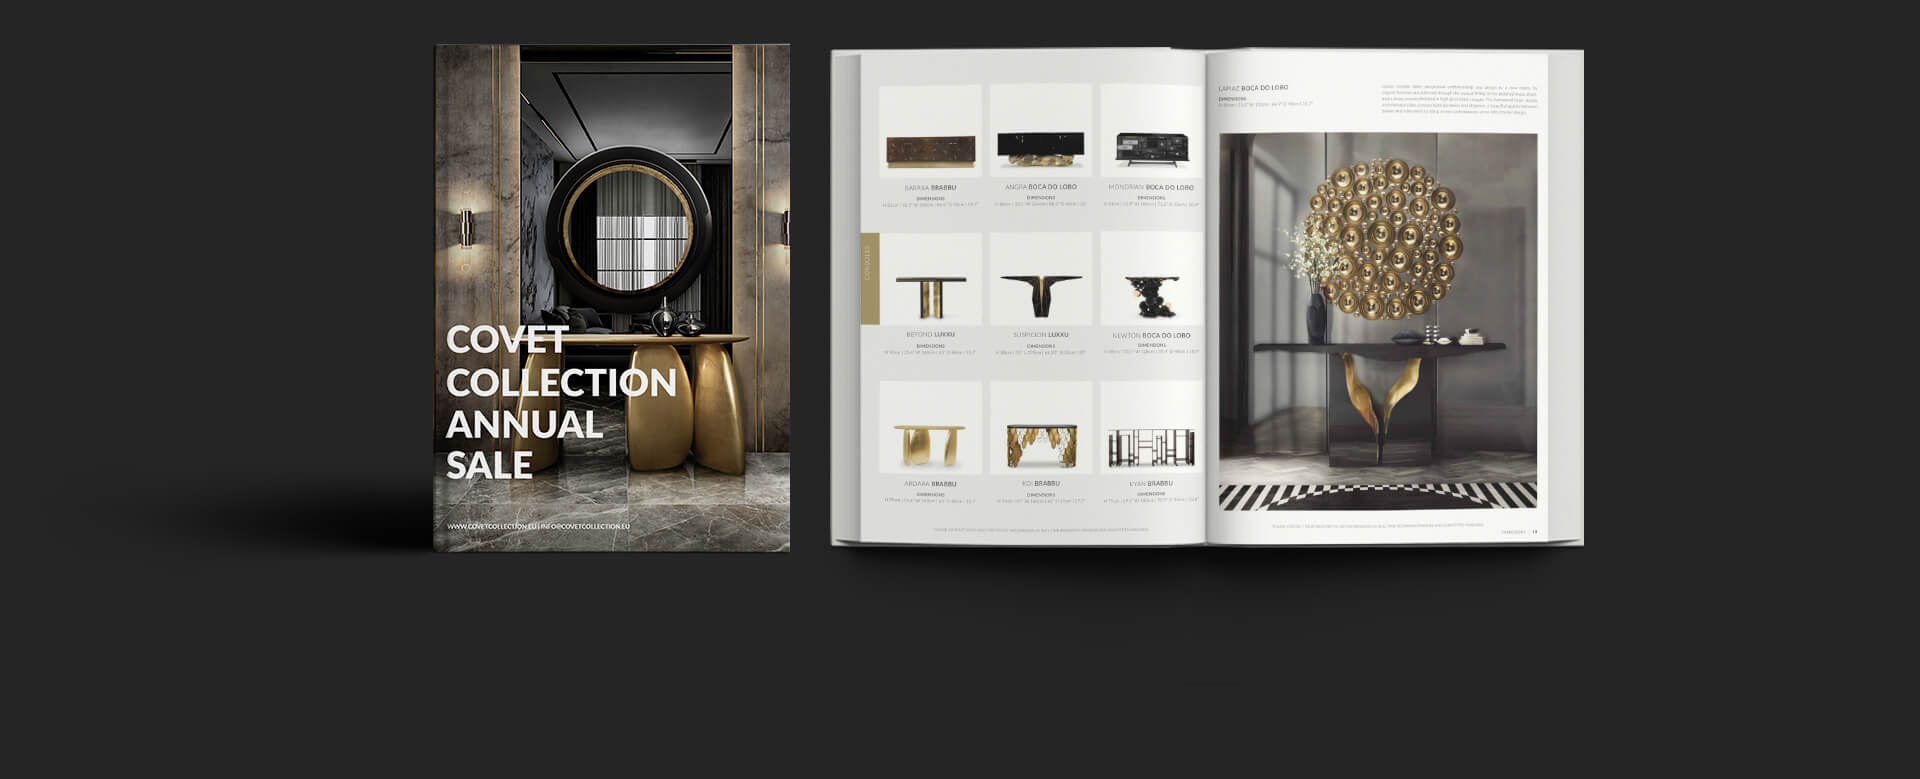 Covet Collection Annual Sale